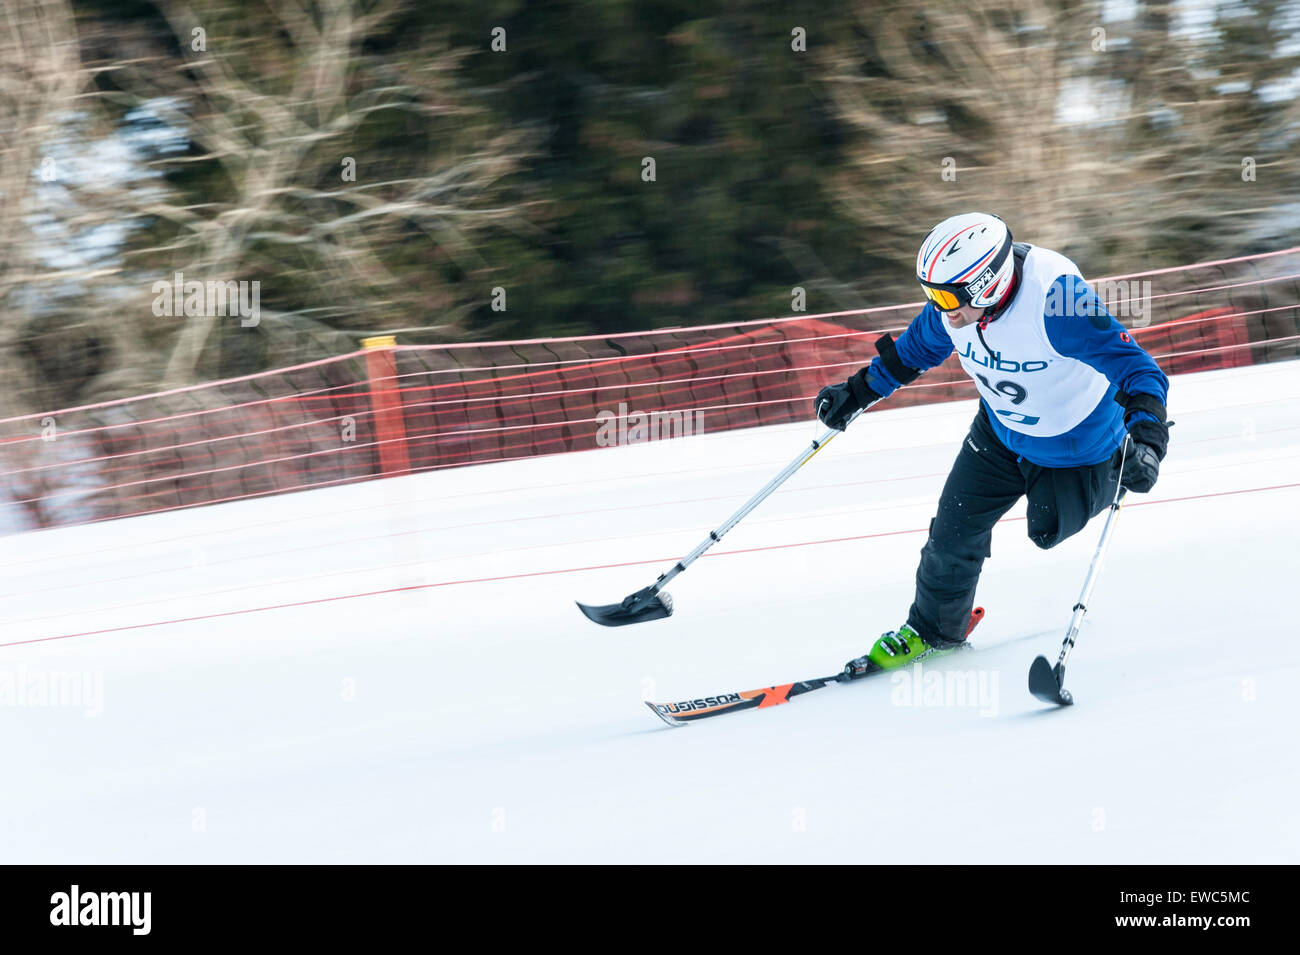 A disabled competitor using specially-adapted ski equipment, racing downhill. - Stock Image